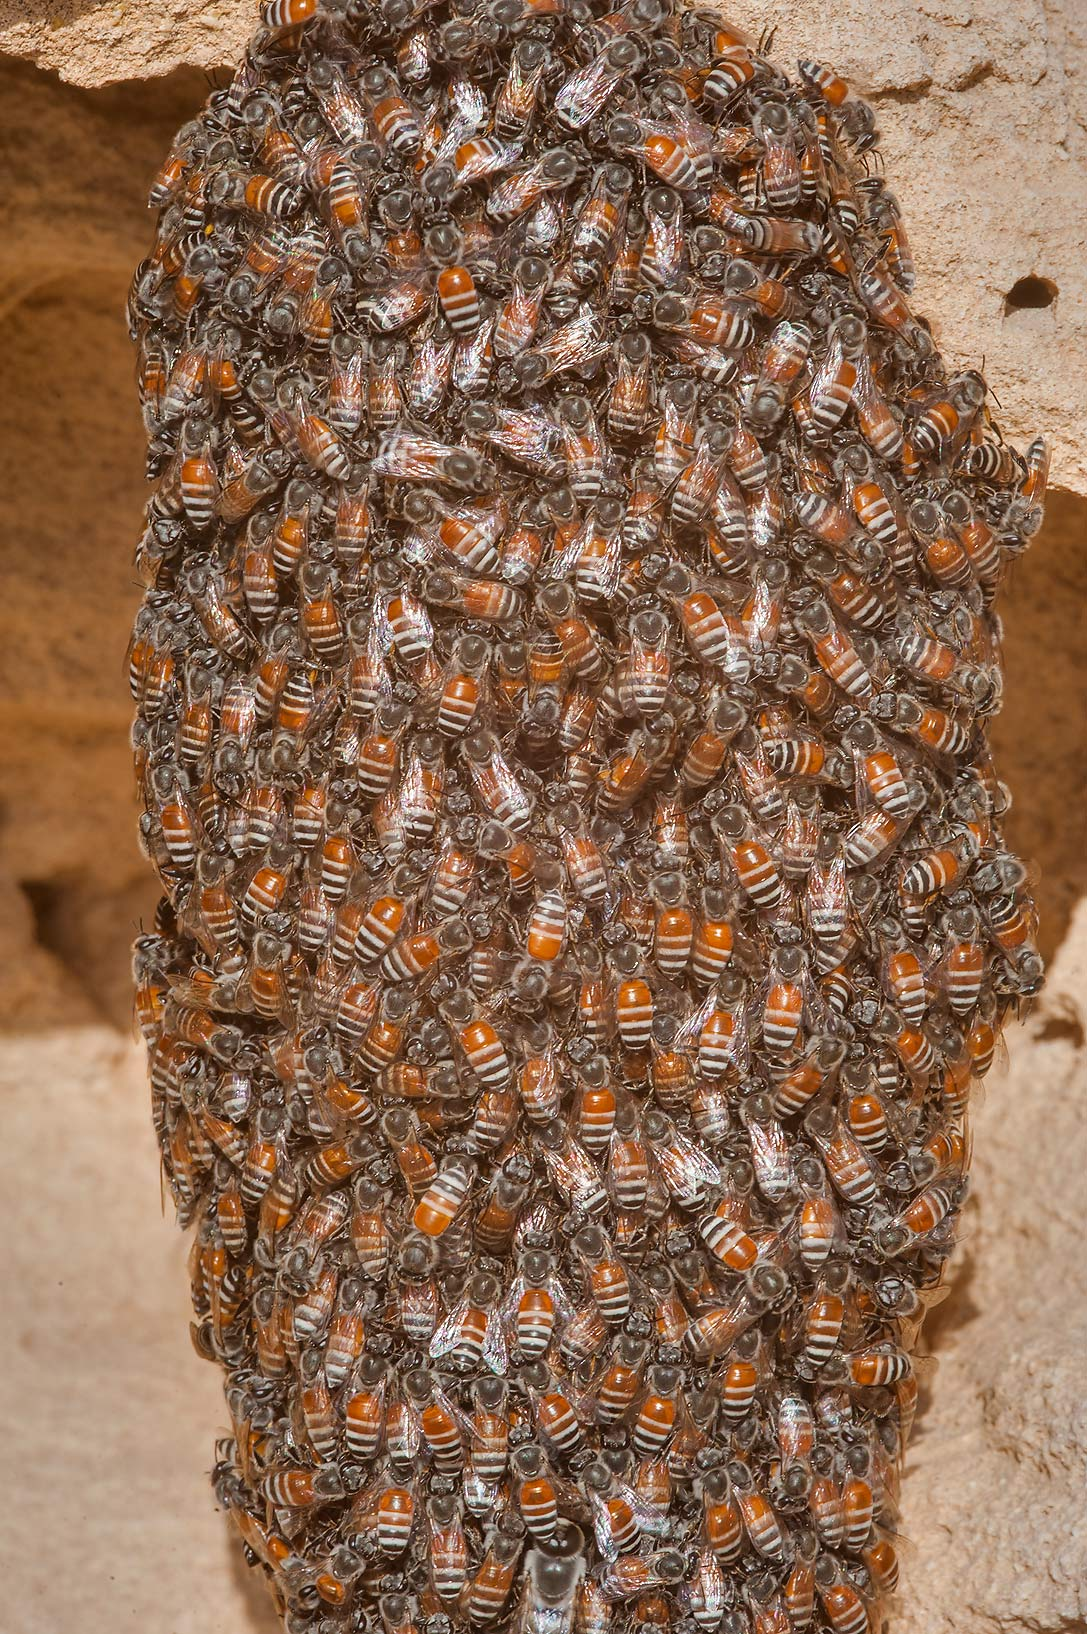 Swarming honey bees on a rocky ridge of Jebel Fuwairit. Northern Qatar